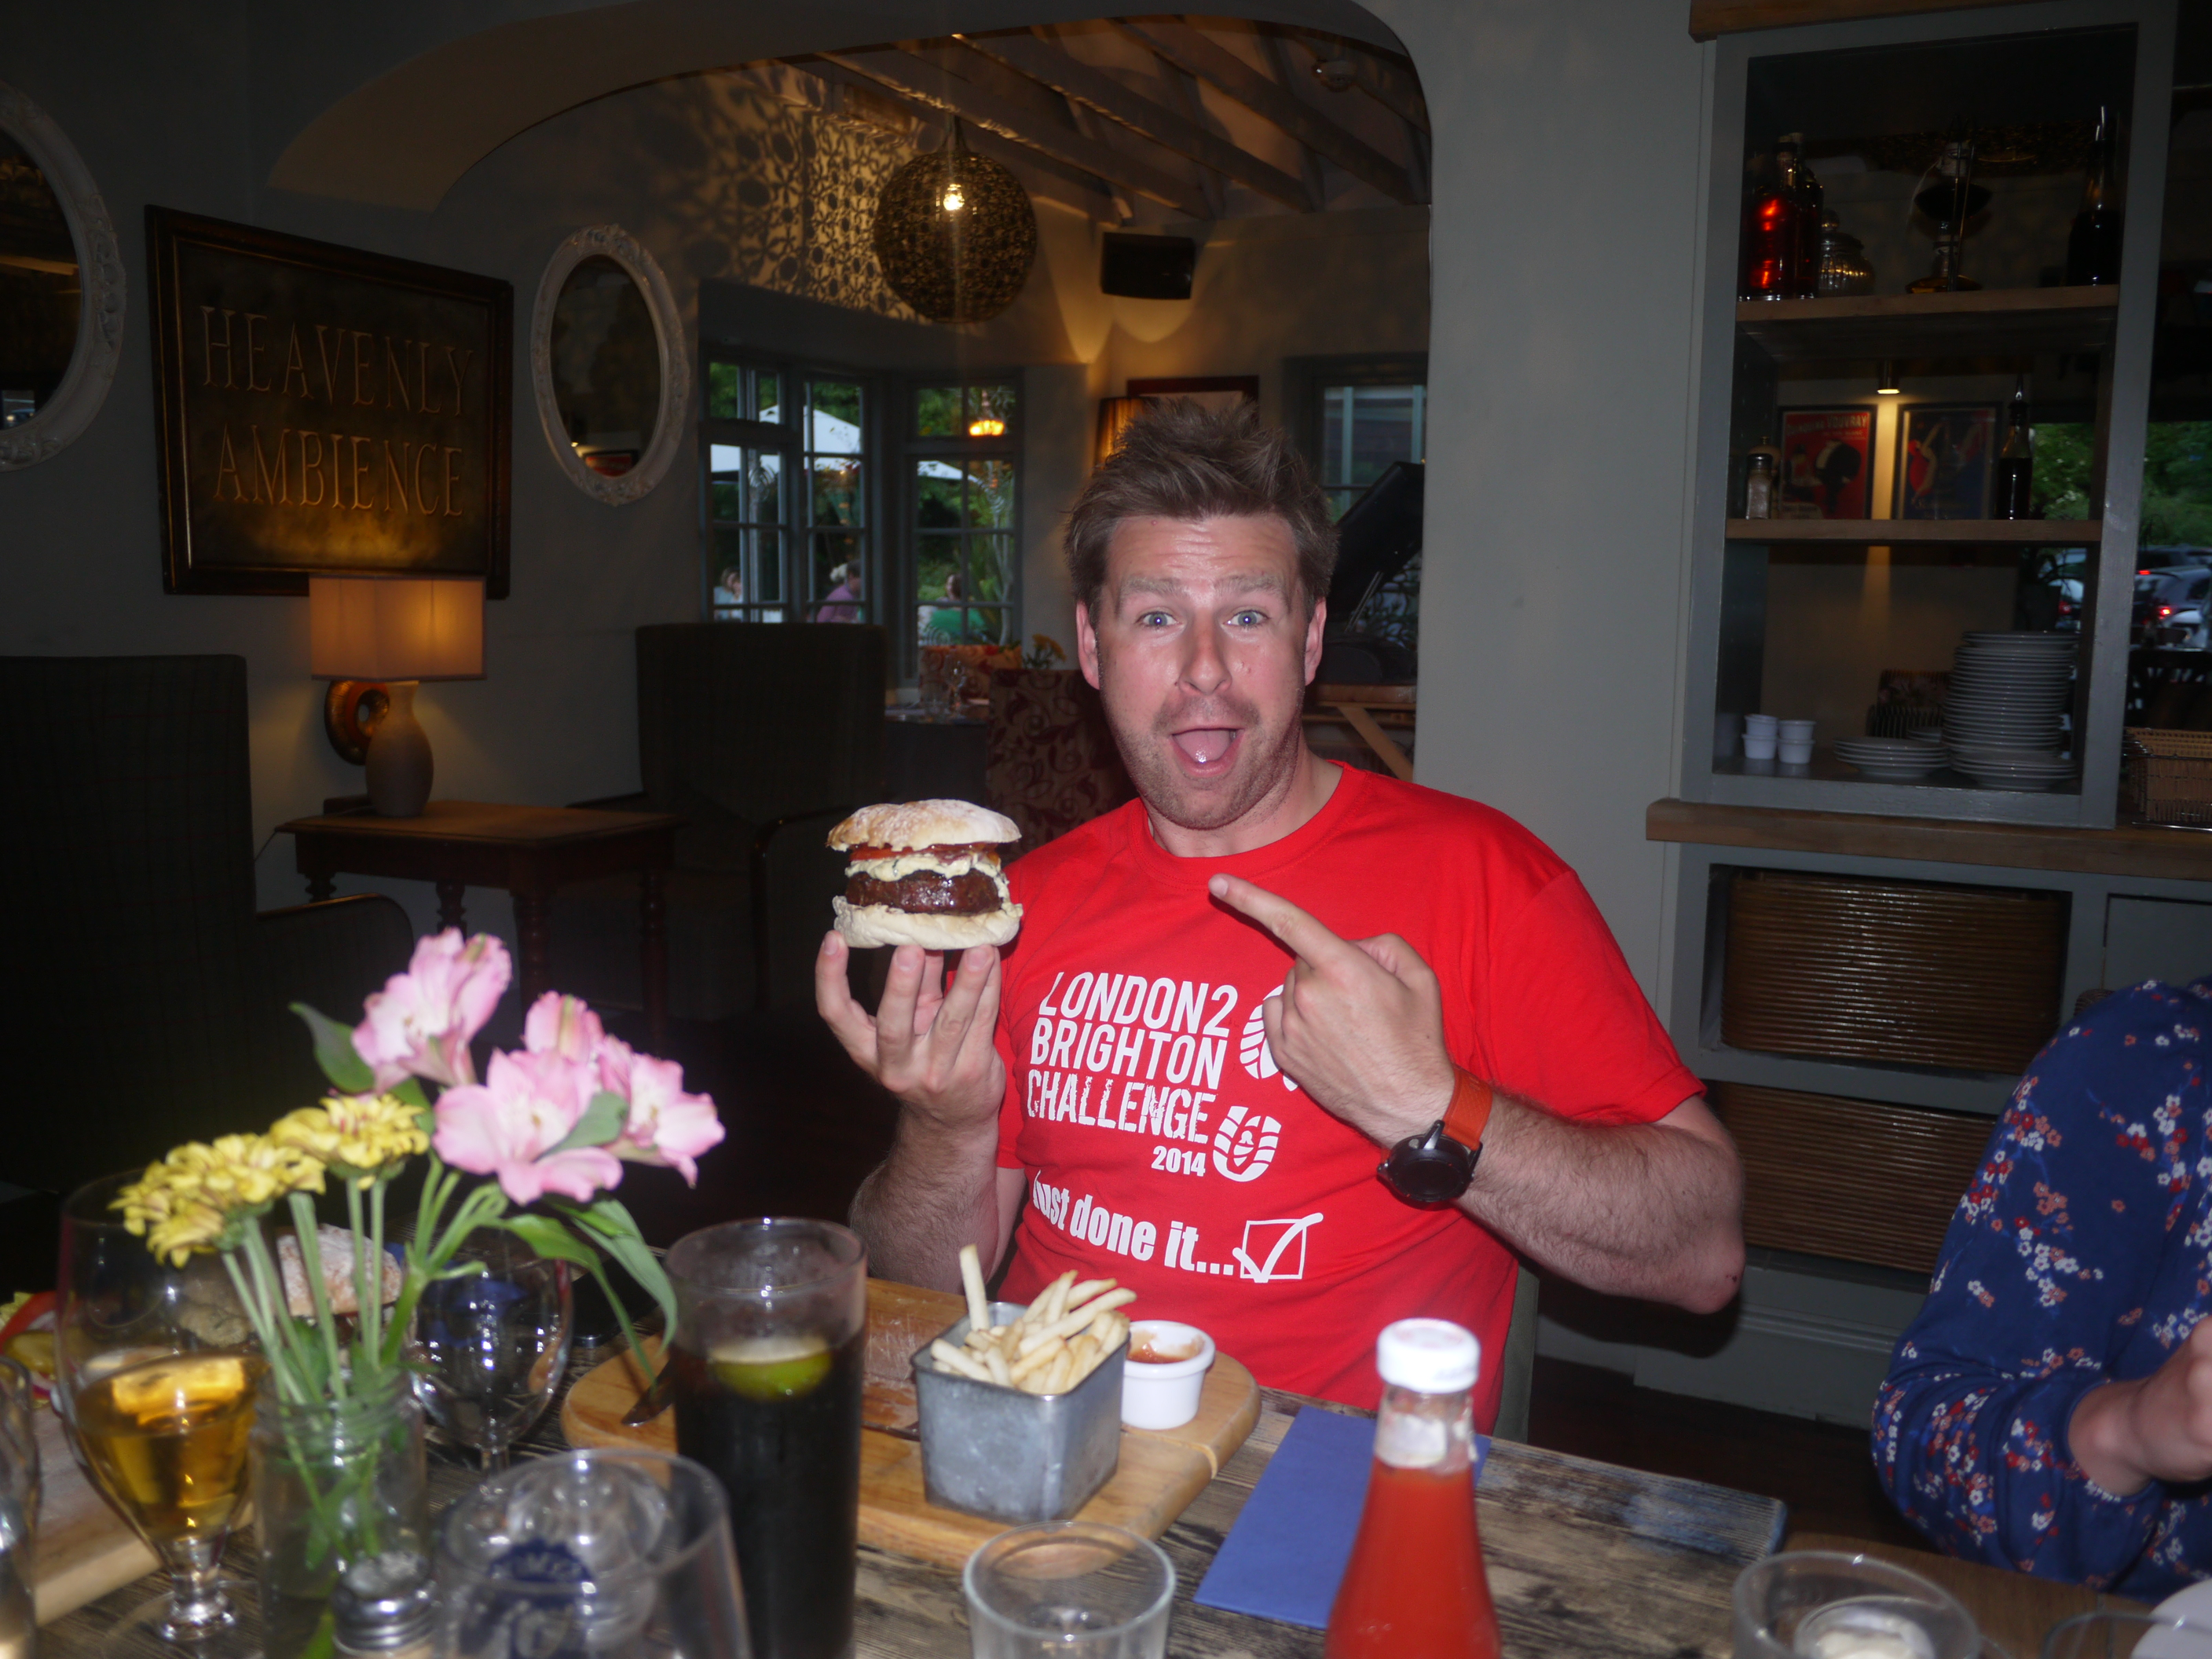 Russ - getting on the protein intake